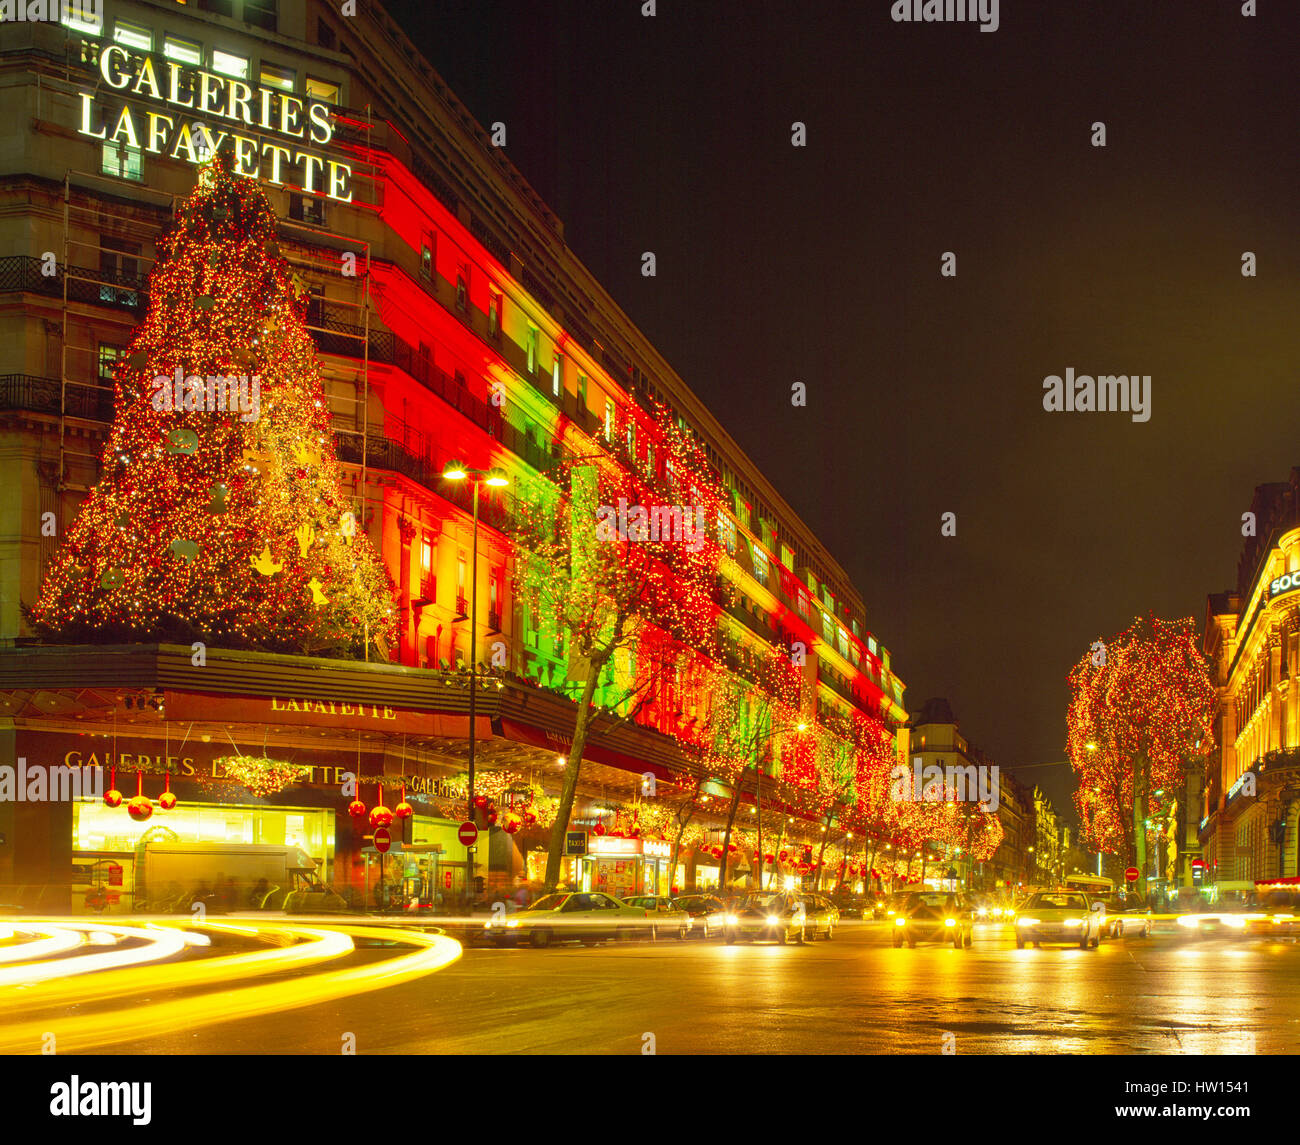 Galeris Lafayette and Boulevard Haussmann decorated for Christmas, Paris, France - Stock Image